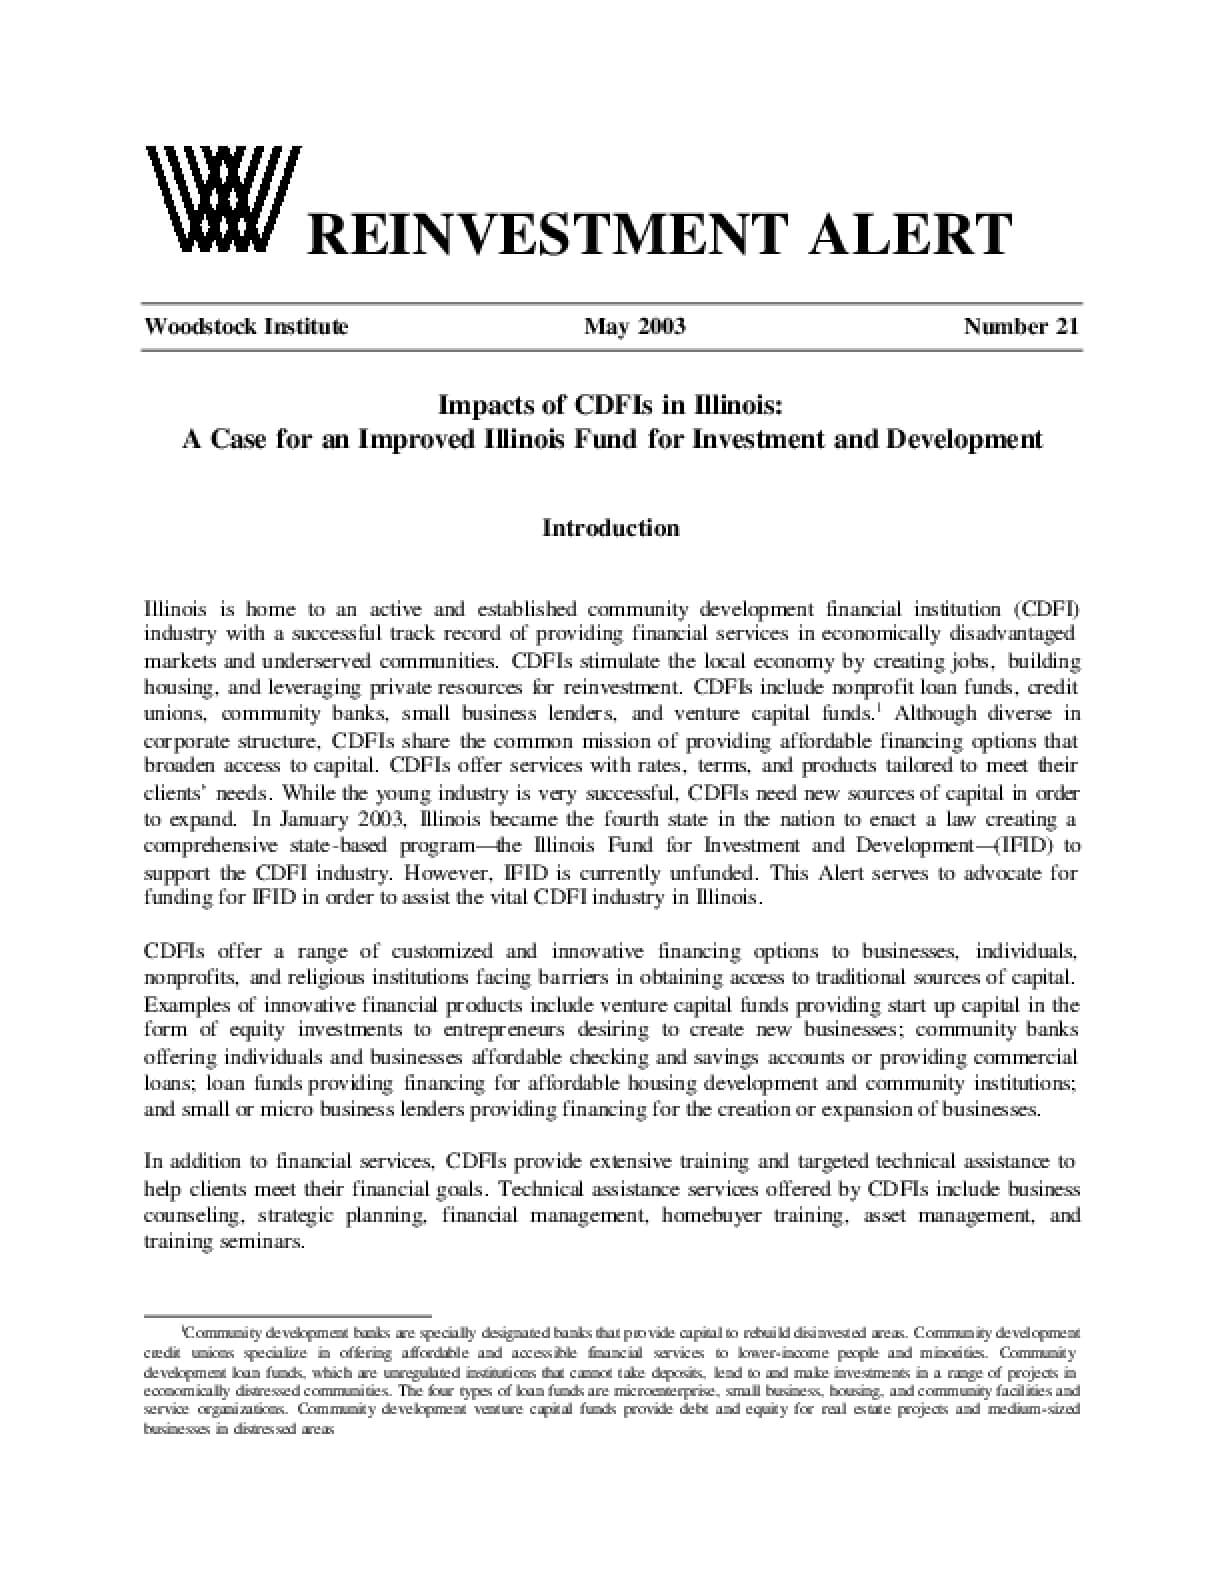 Reinvestment Alert 21: Impacts of CDFIs in Illinois: A Case for an Improved Illinois Fund for Invest